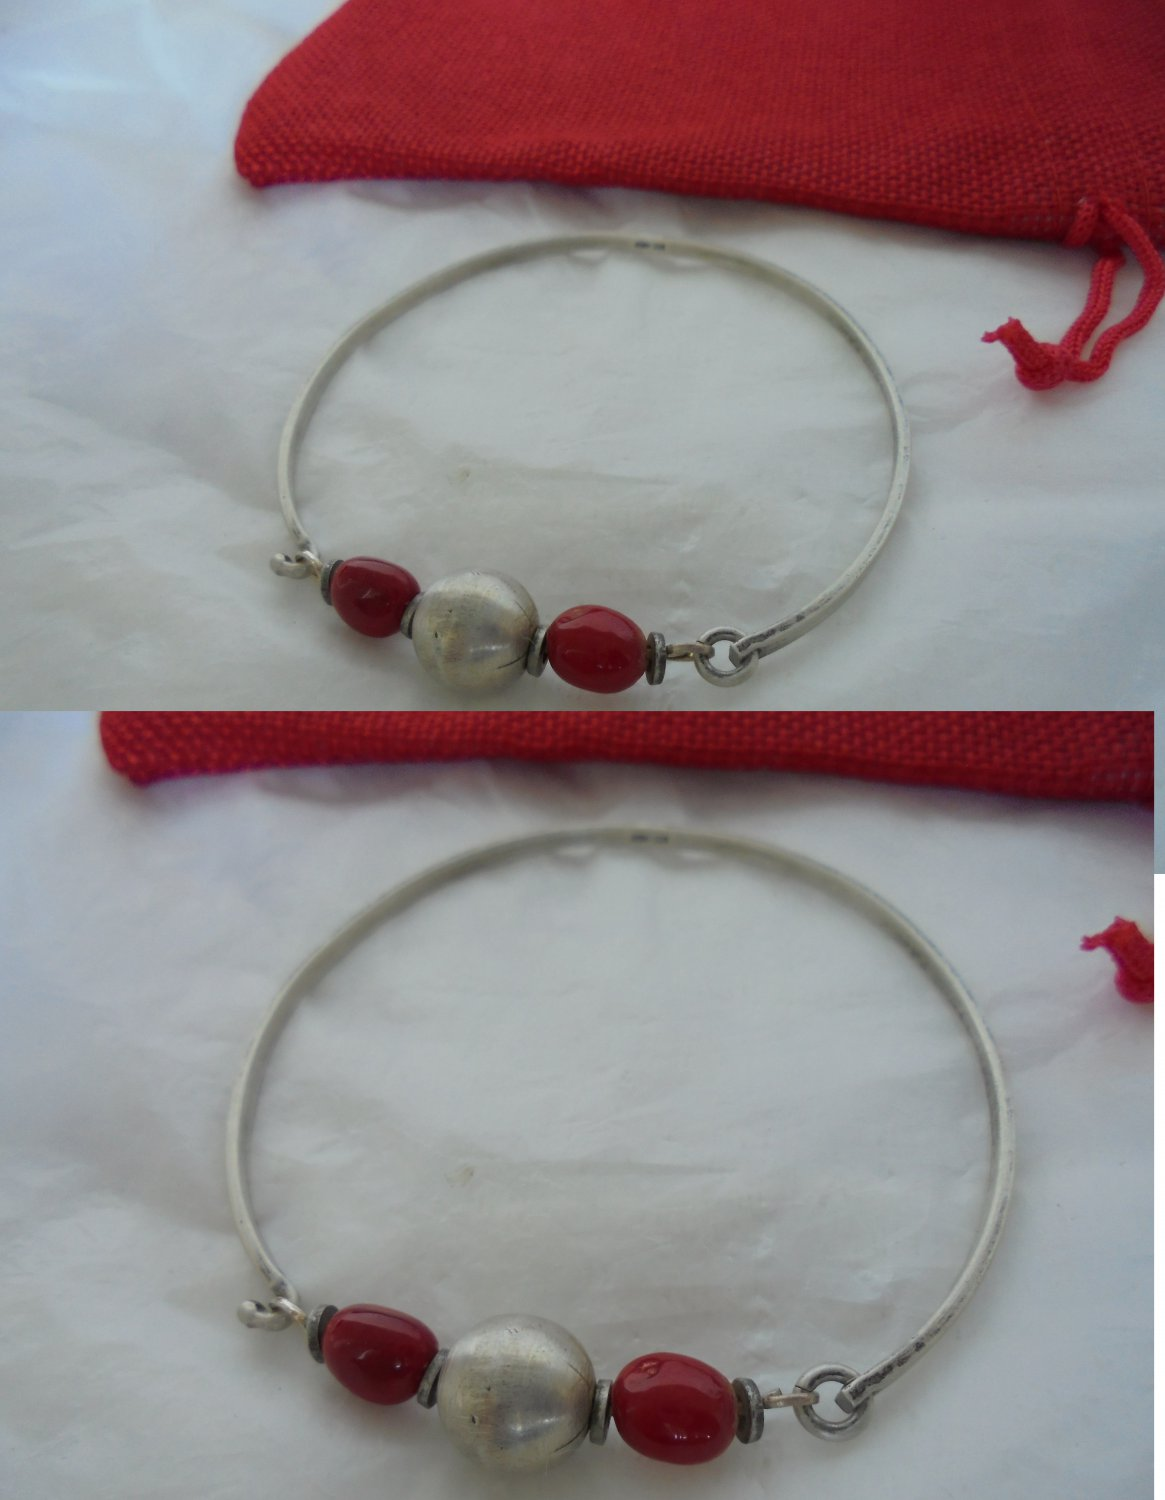 BRACELET in SILVER 800 and red CORAL from Napoli Italy Original 1960s